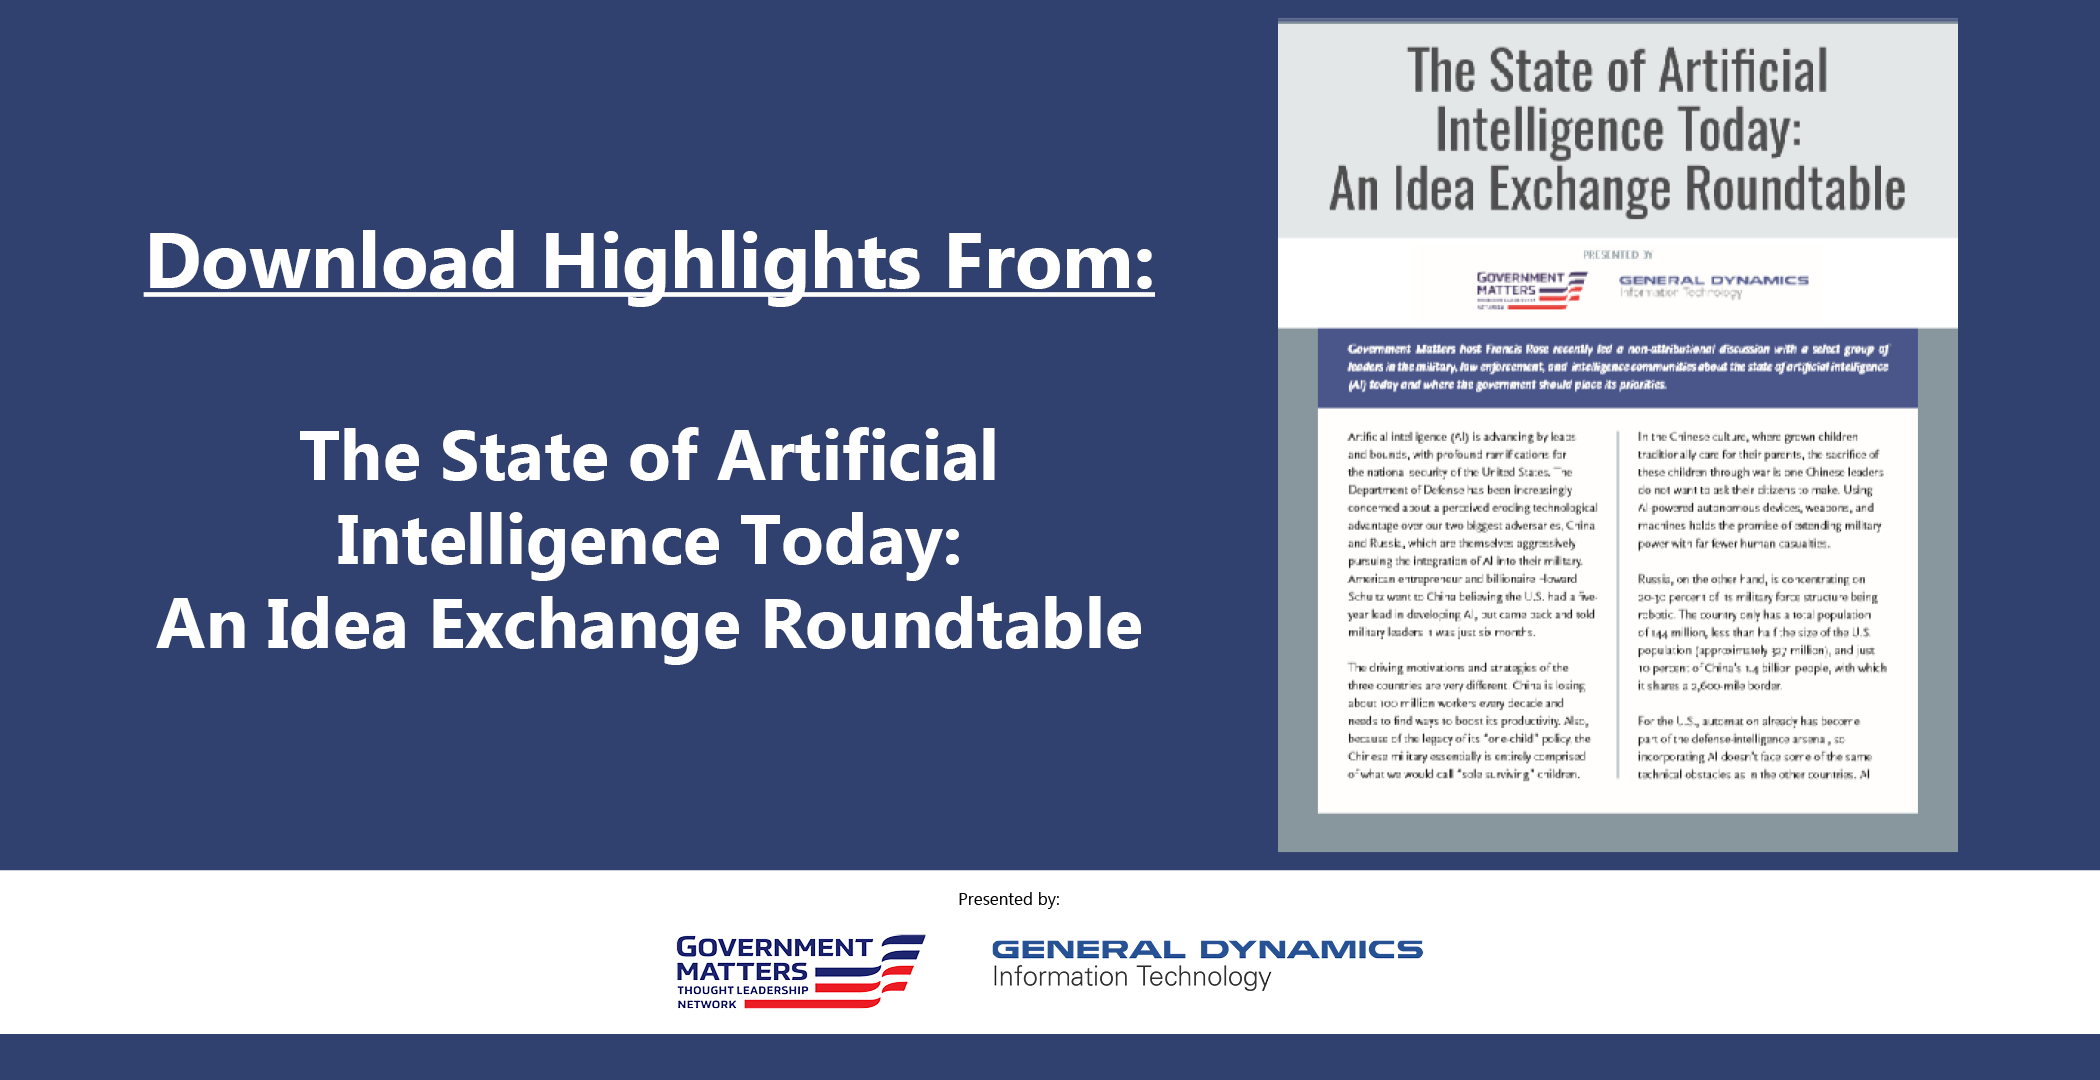 The State of Artificial Intelligence: An Idea Exchange Roundtable